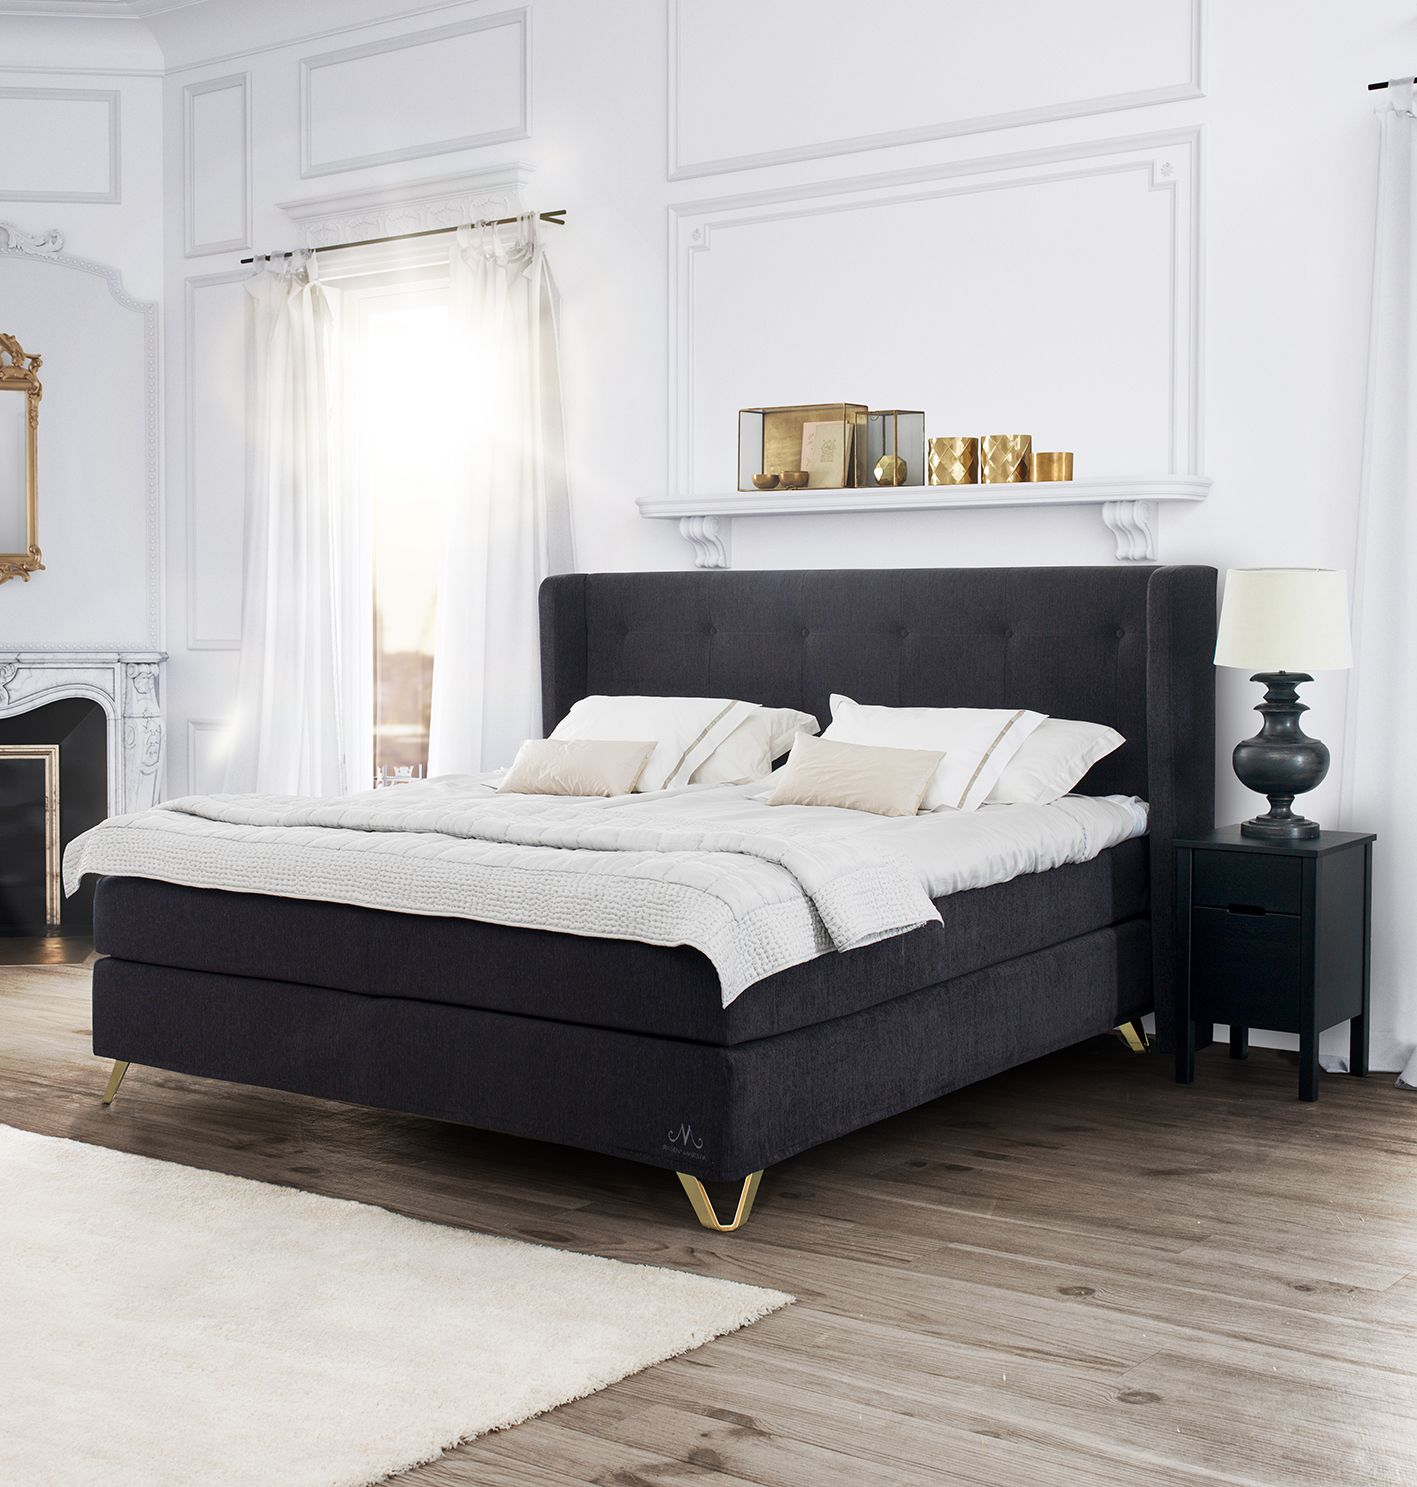 Jensen Majestic Continental Bed Set Pure Perfection Balance And Harmony